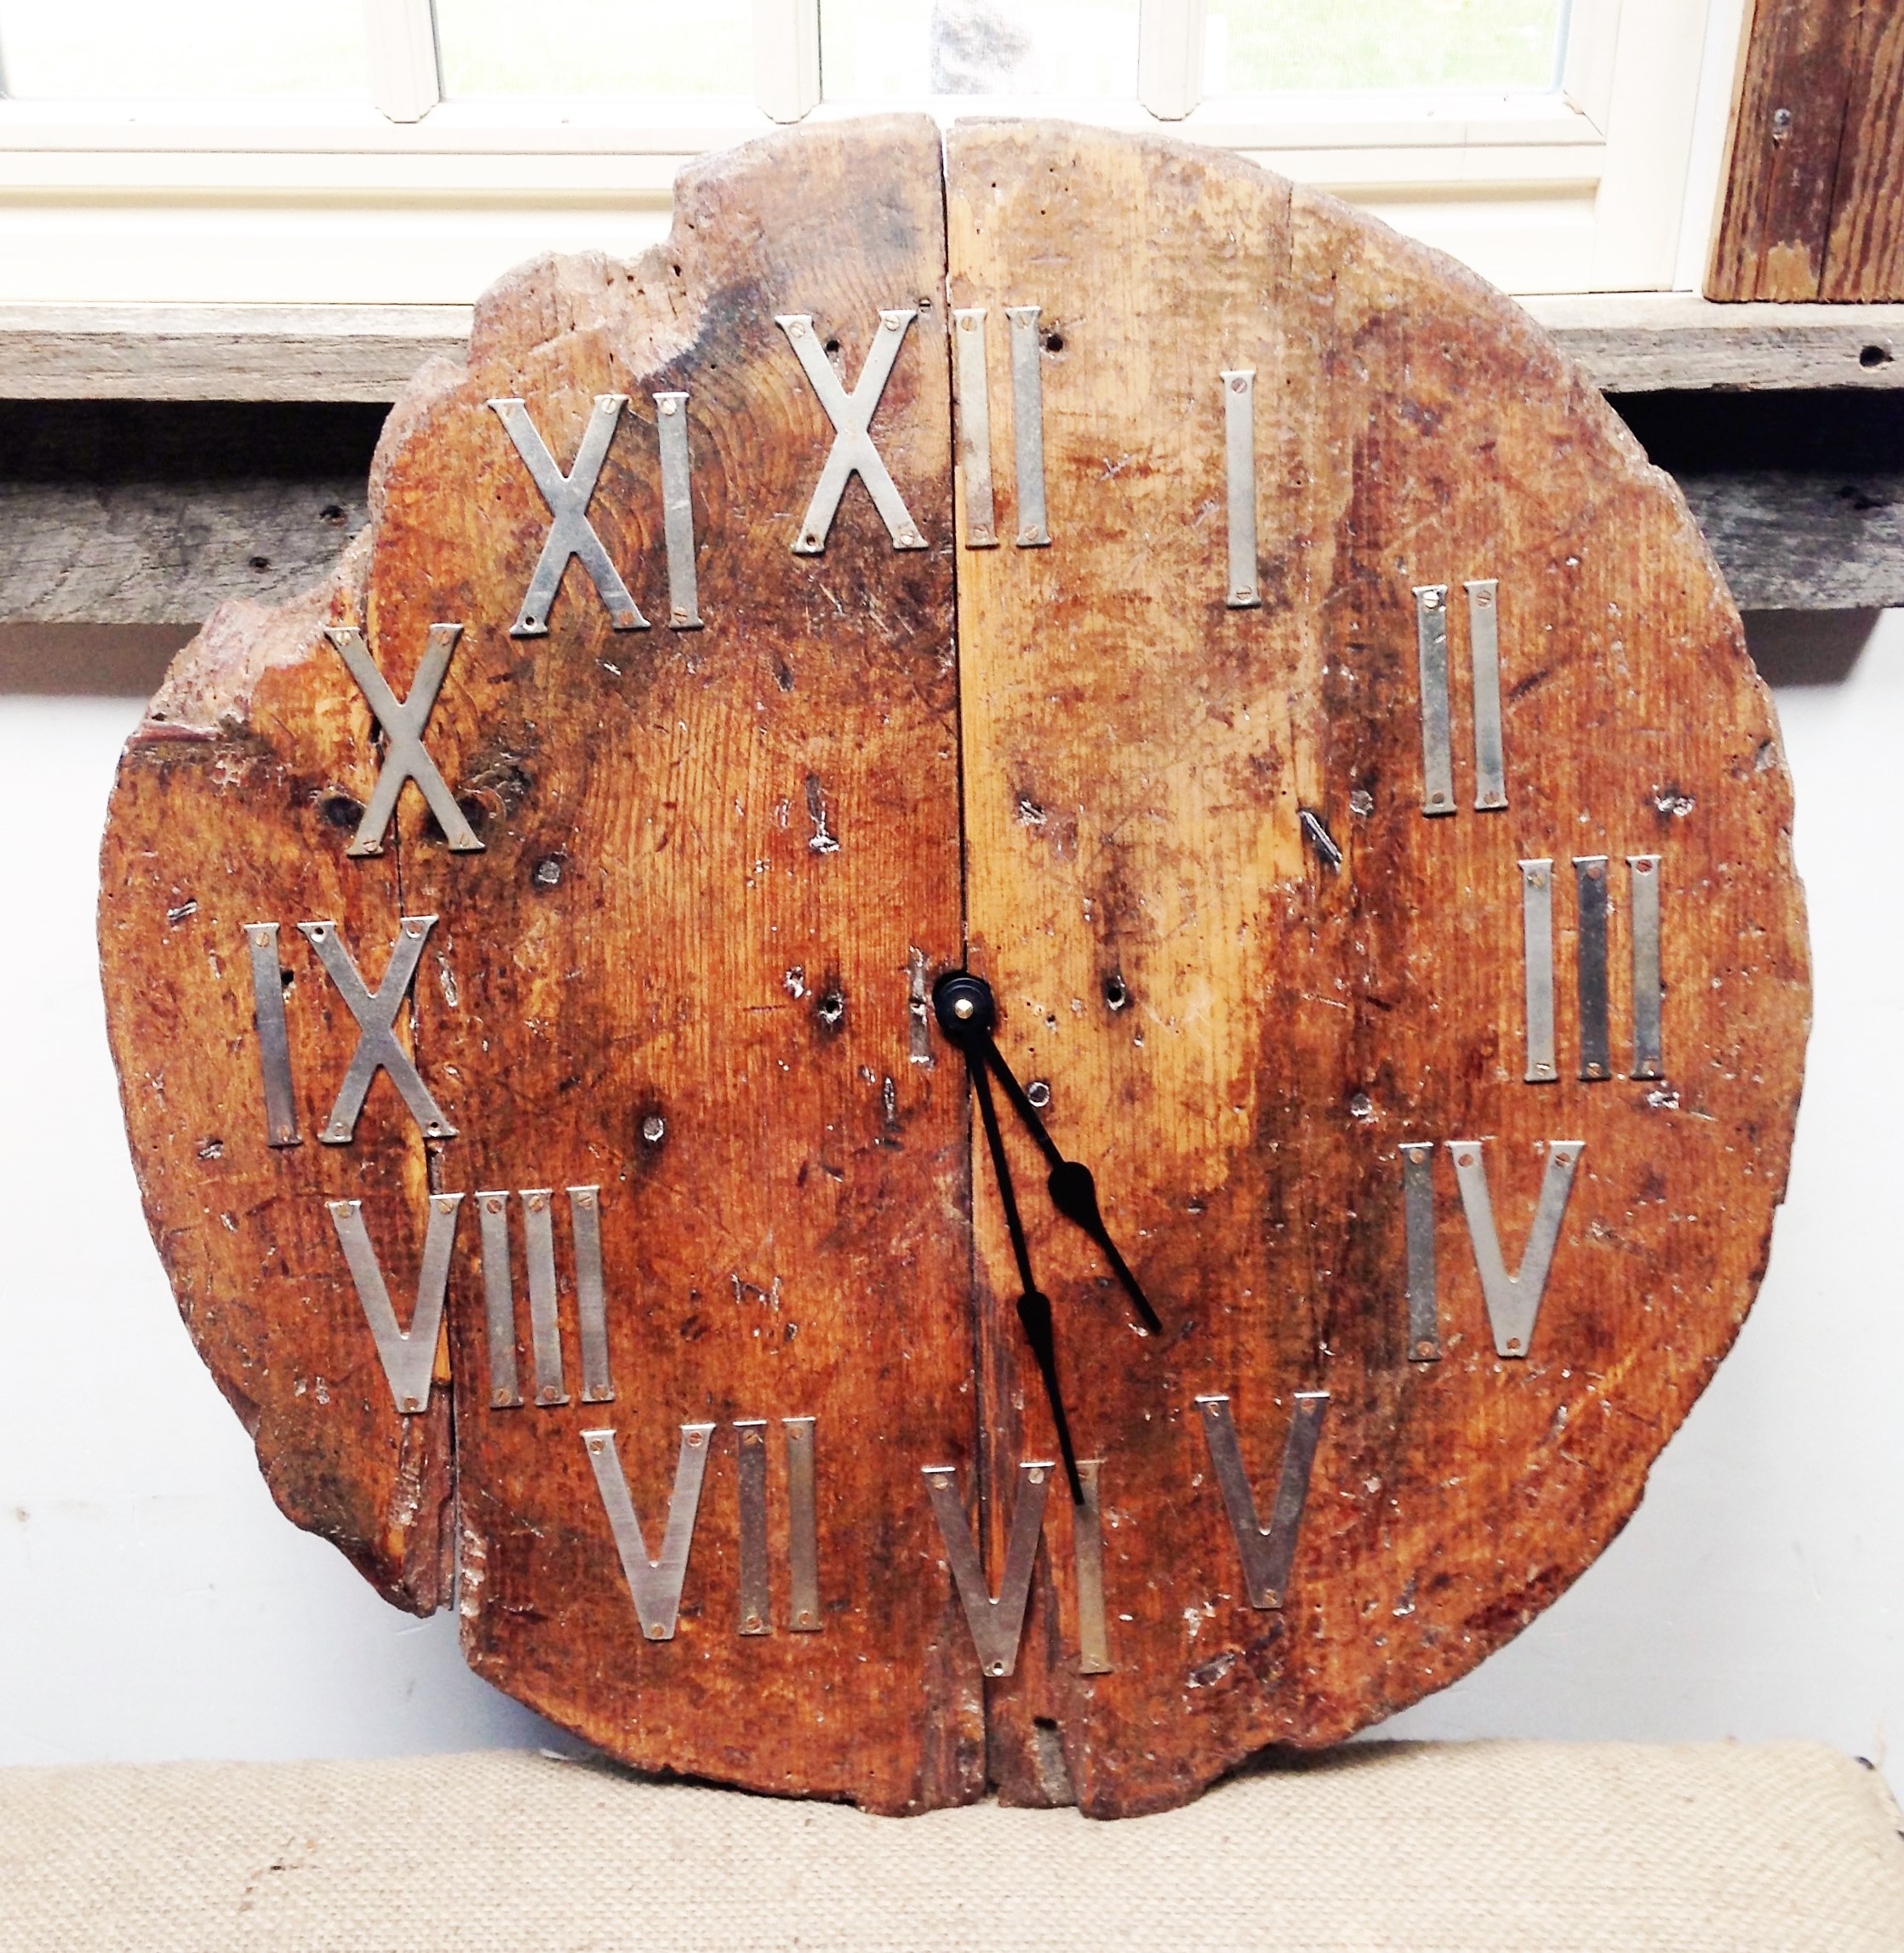 A fine example of re-purposing: a weathered barrel top becomes a one-of-a-kind clock.